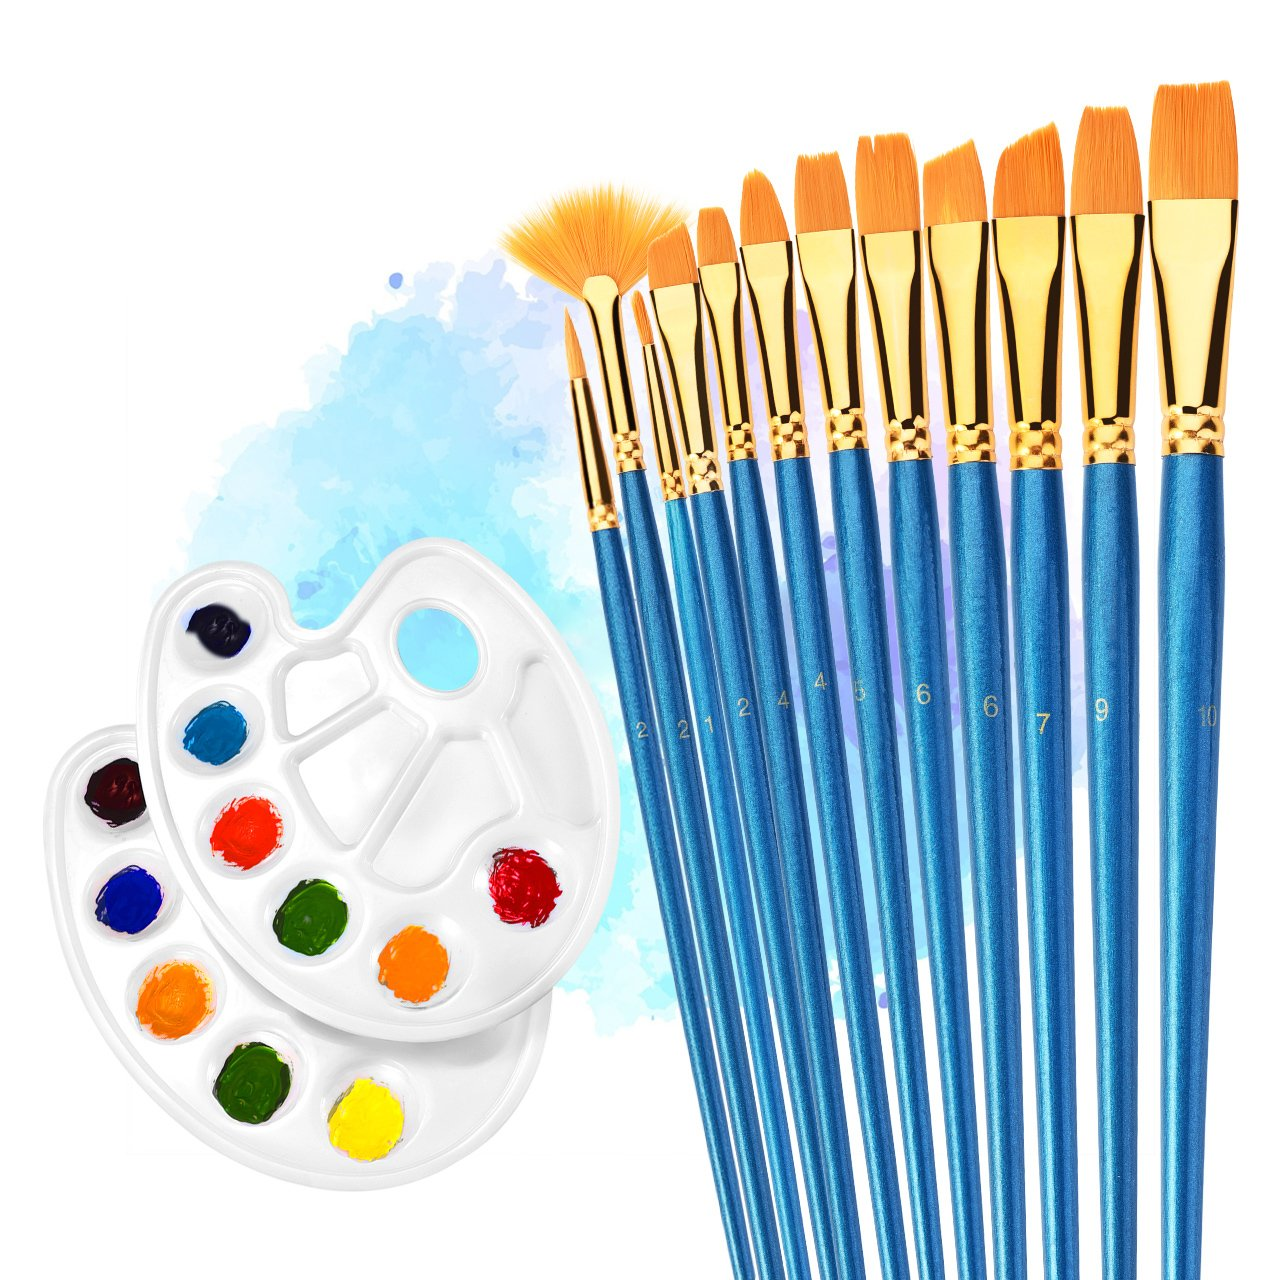 4 Piece Painting Kit Kids Apron Oil Paint Glitter Paint /& 12 Paint Brushes Art!!